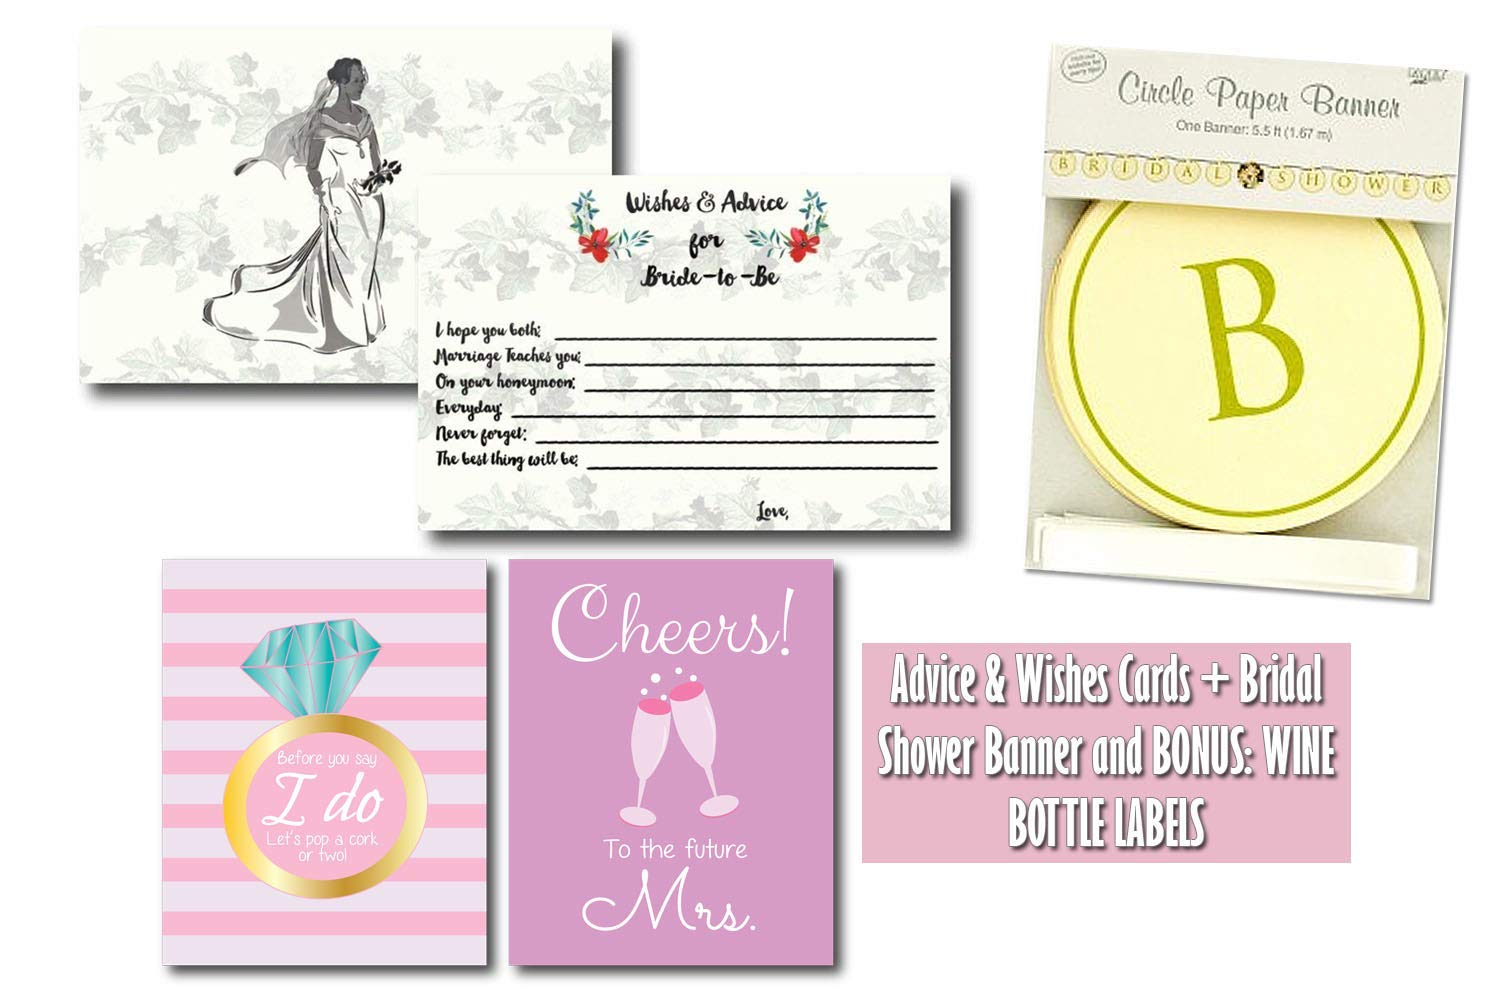 get quotations 50 bride to be advice and wishes cards with bridal shower paper banner bonus bridal